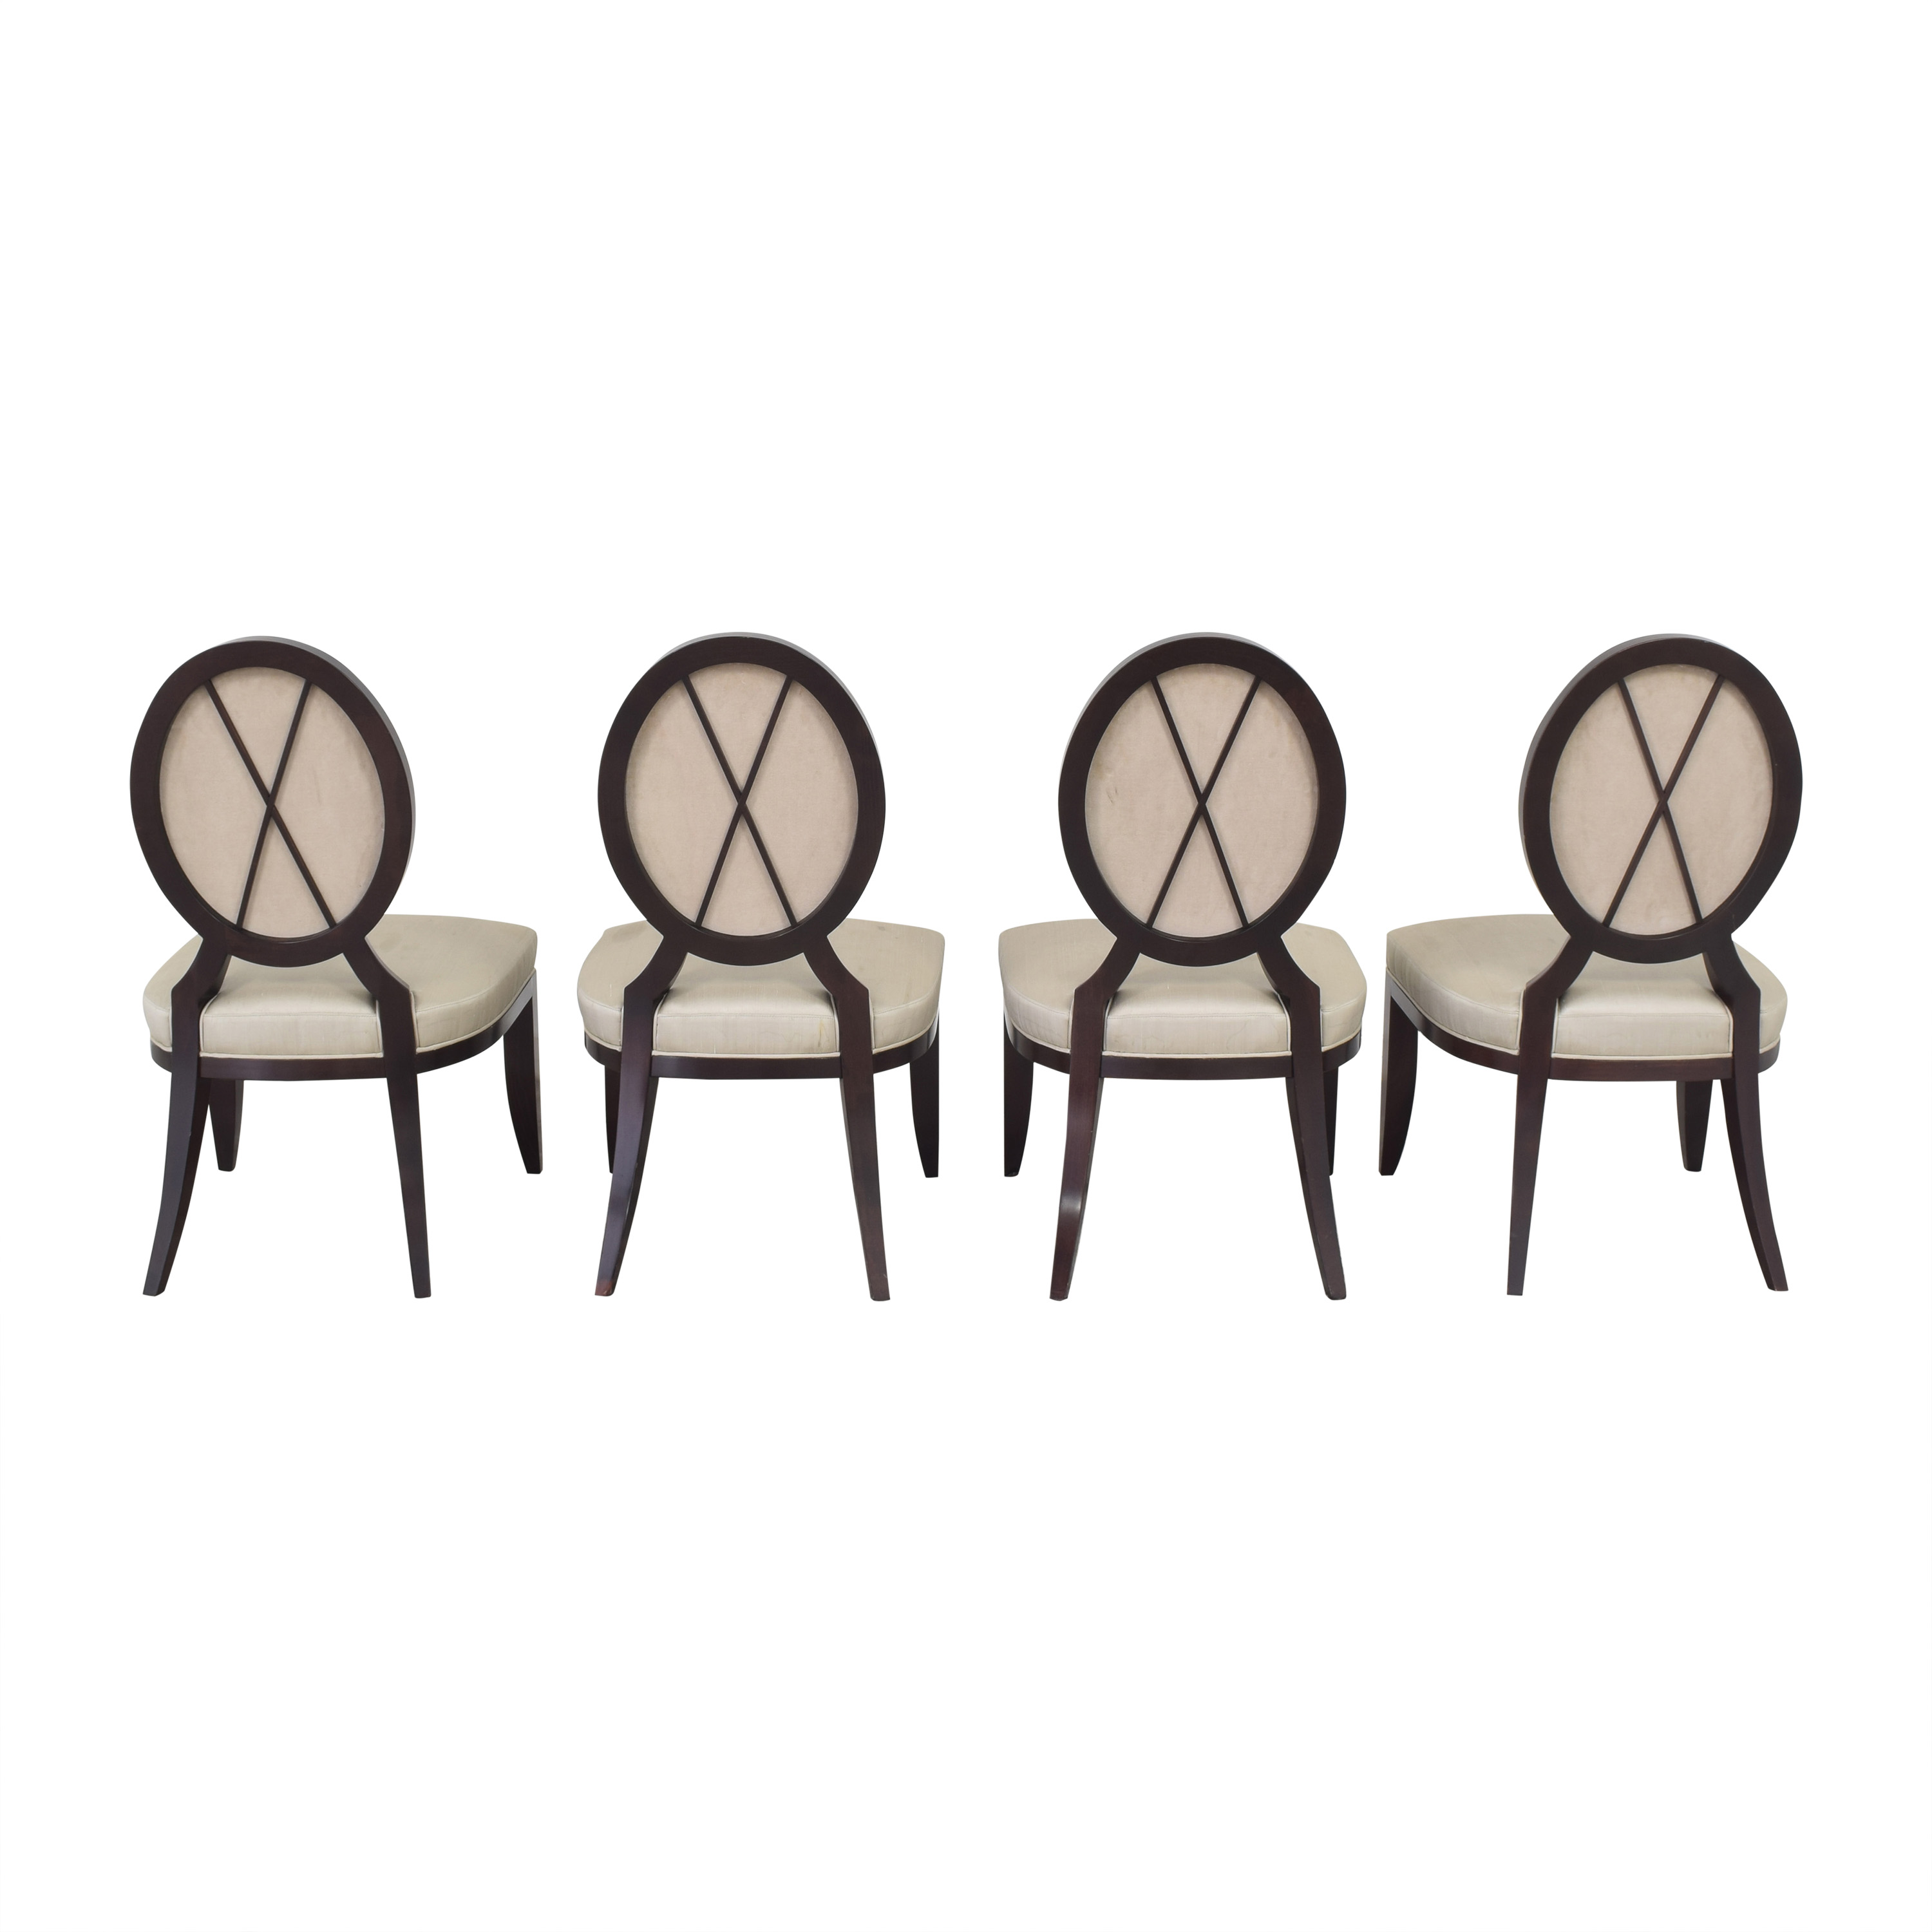 Baker Furniture Baker Furniture Oval X Back Dining Chairs price